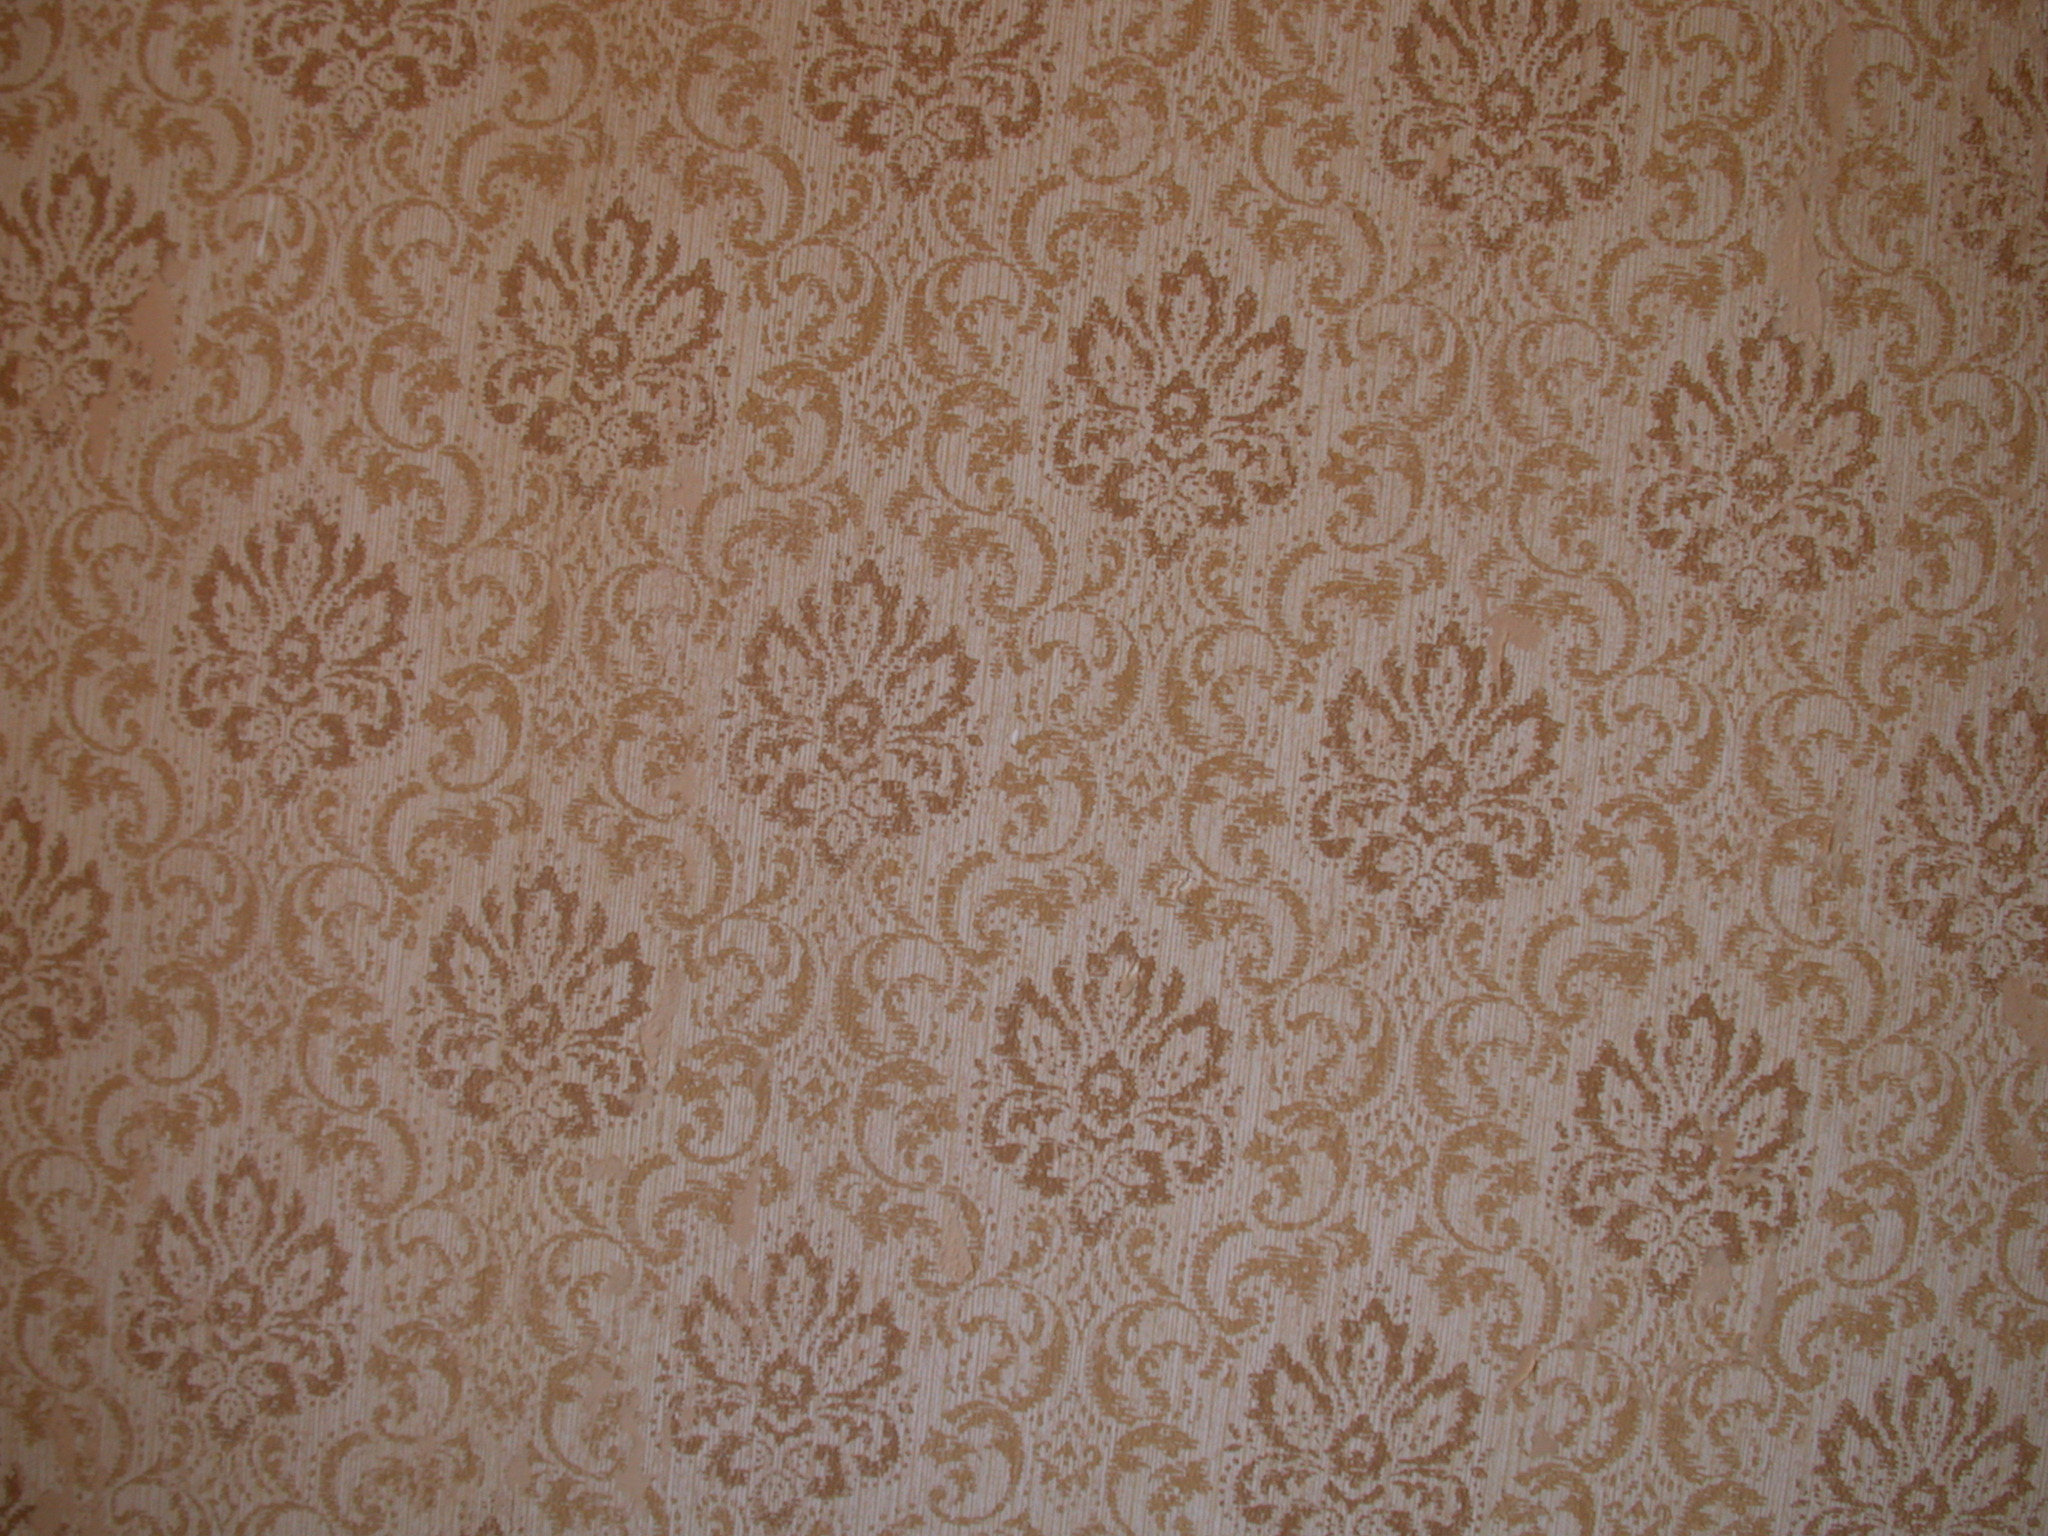 Patterned Fabric CS3 Textures